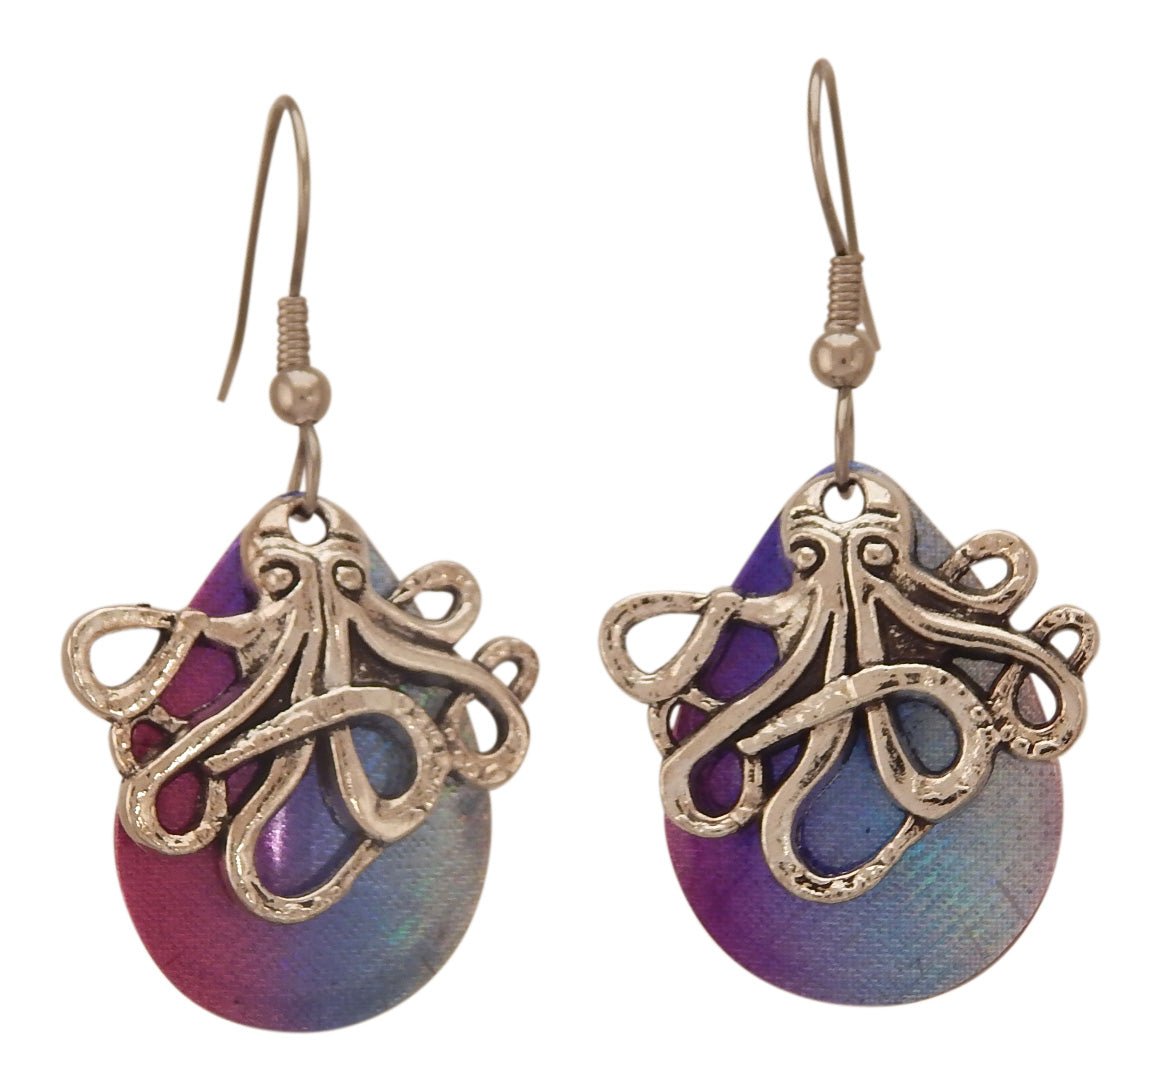 Fishing Lure Drop Style Earrings, 2 pc., Silver Tone Octopus, Blue/Pink Iridescent Backing Lure